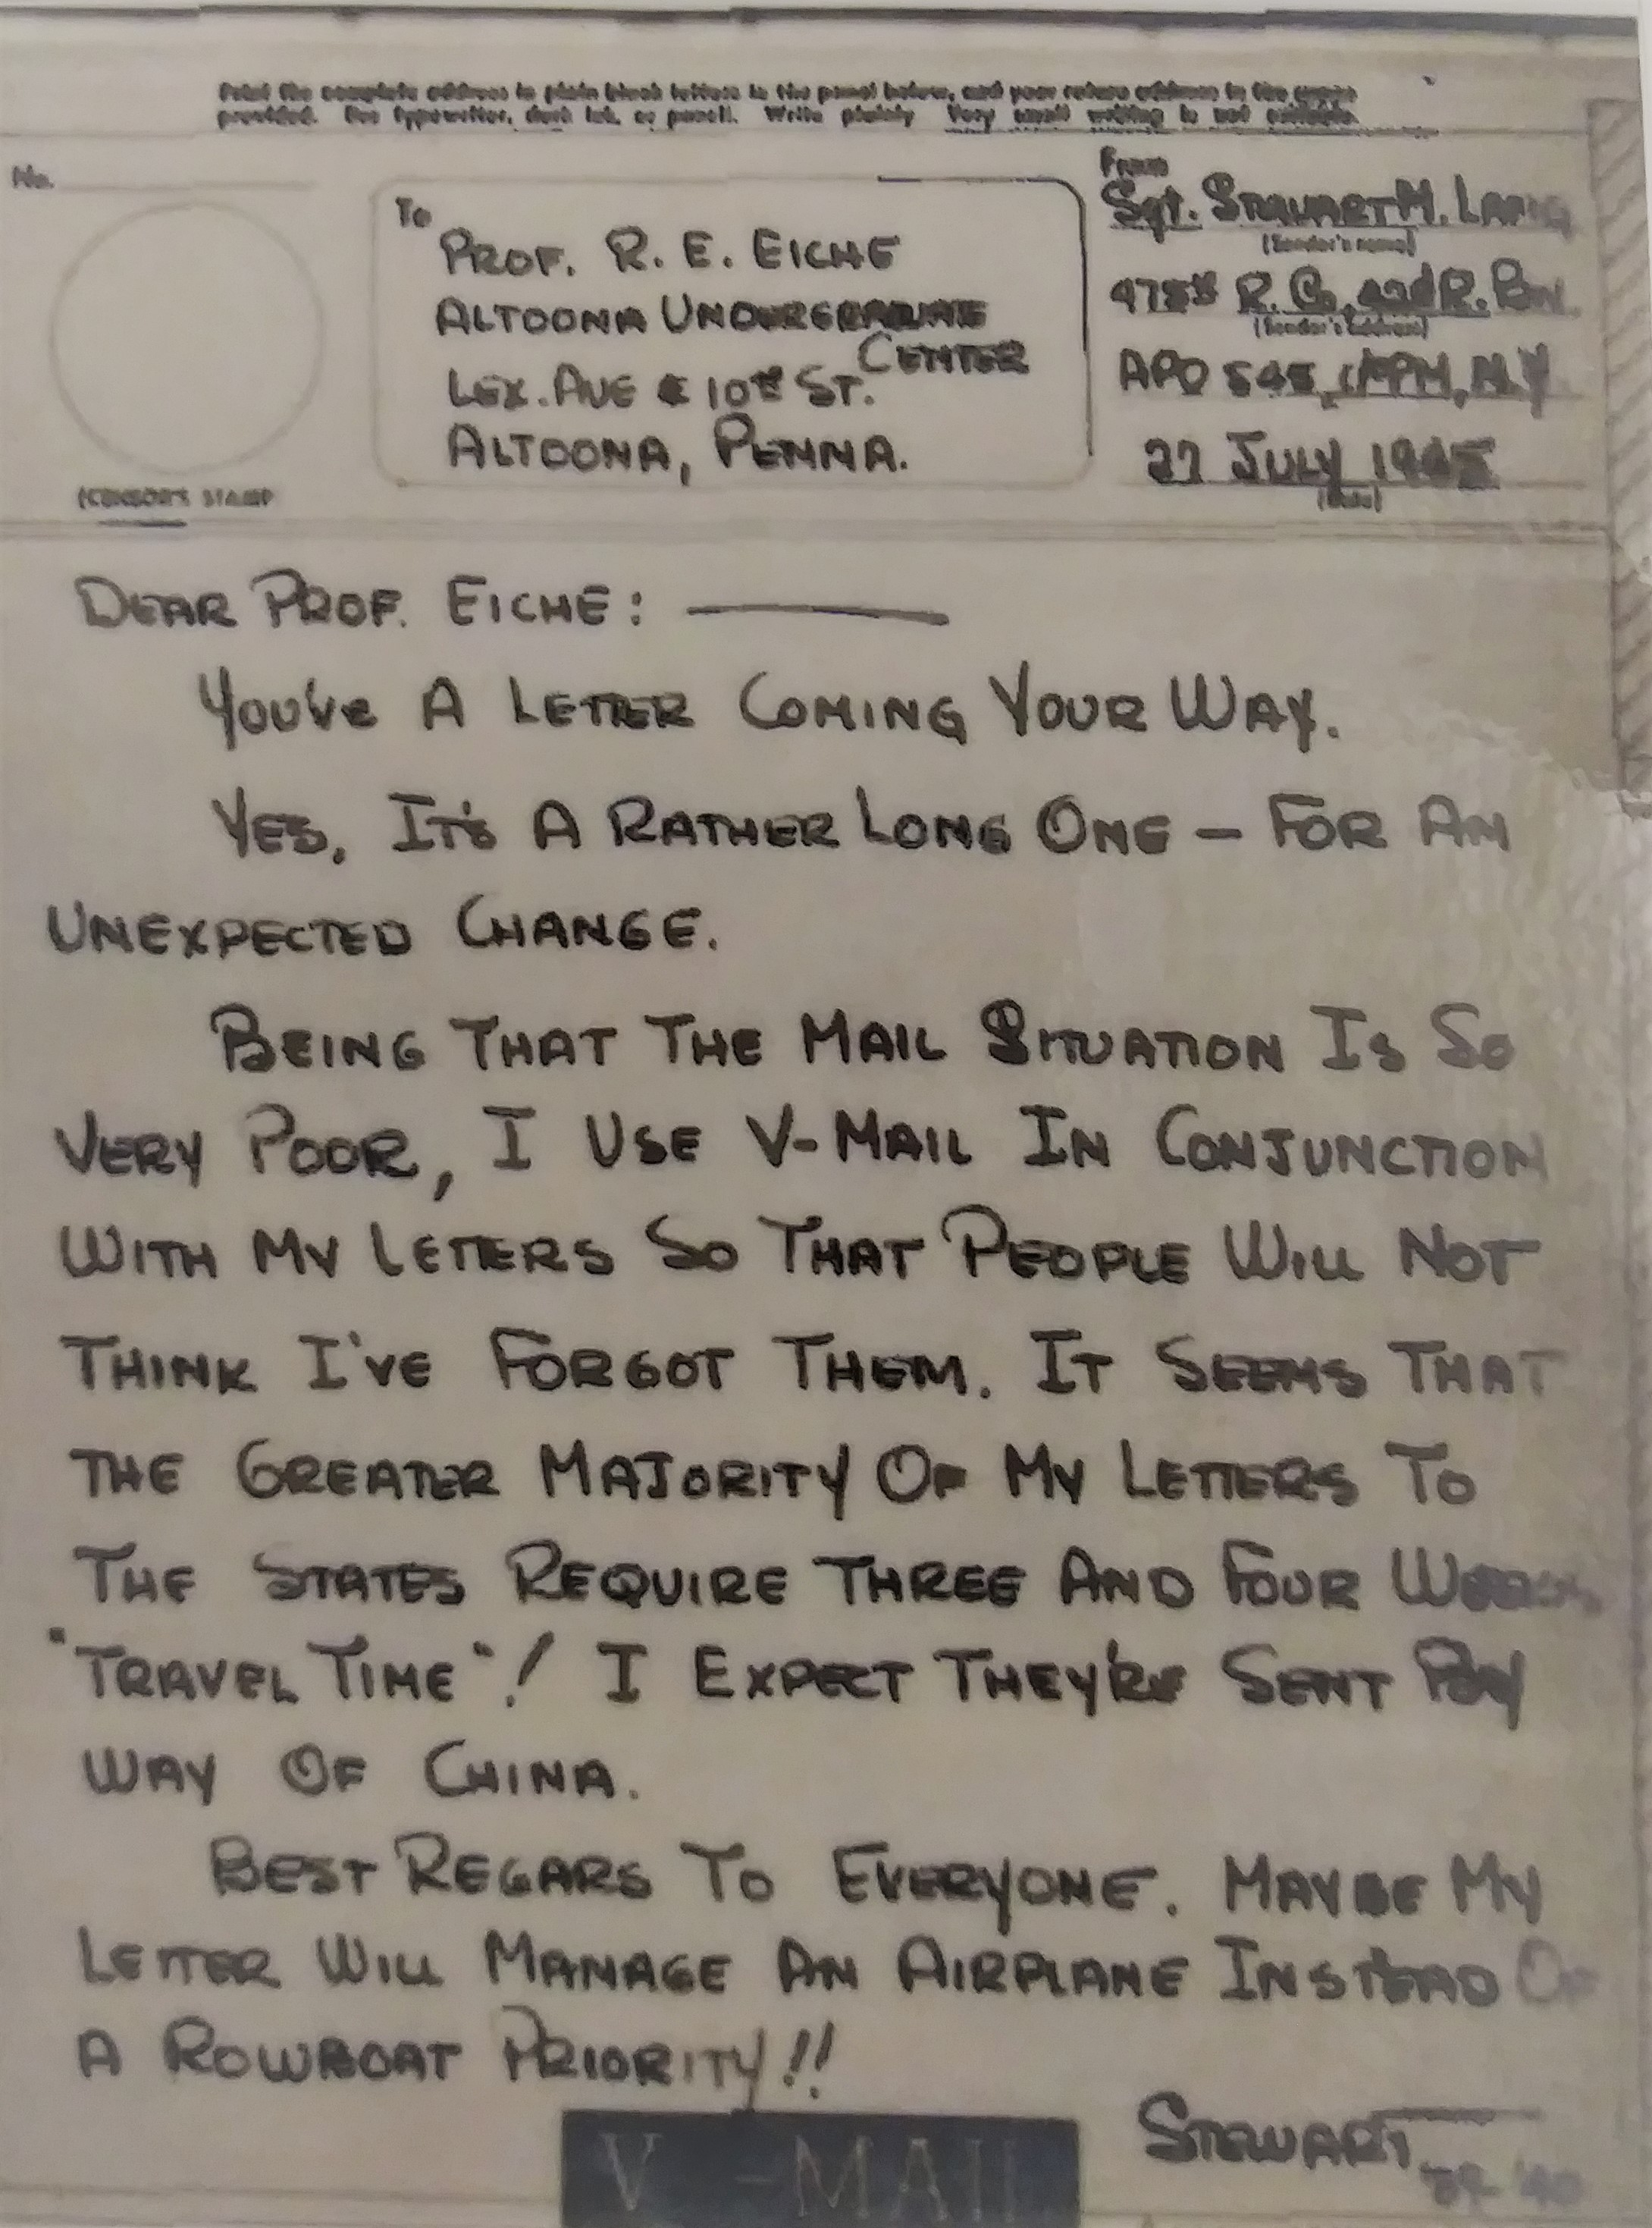 Image of a piece of Victory Mail from a Penn State Altoona student during World War II.